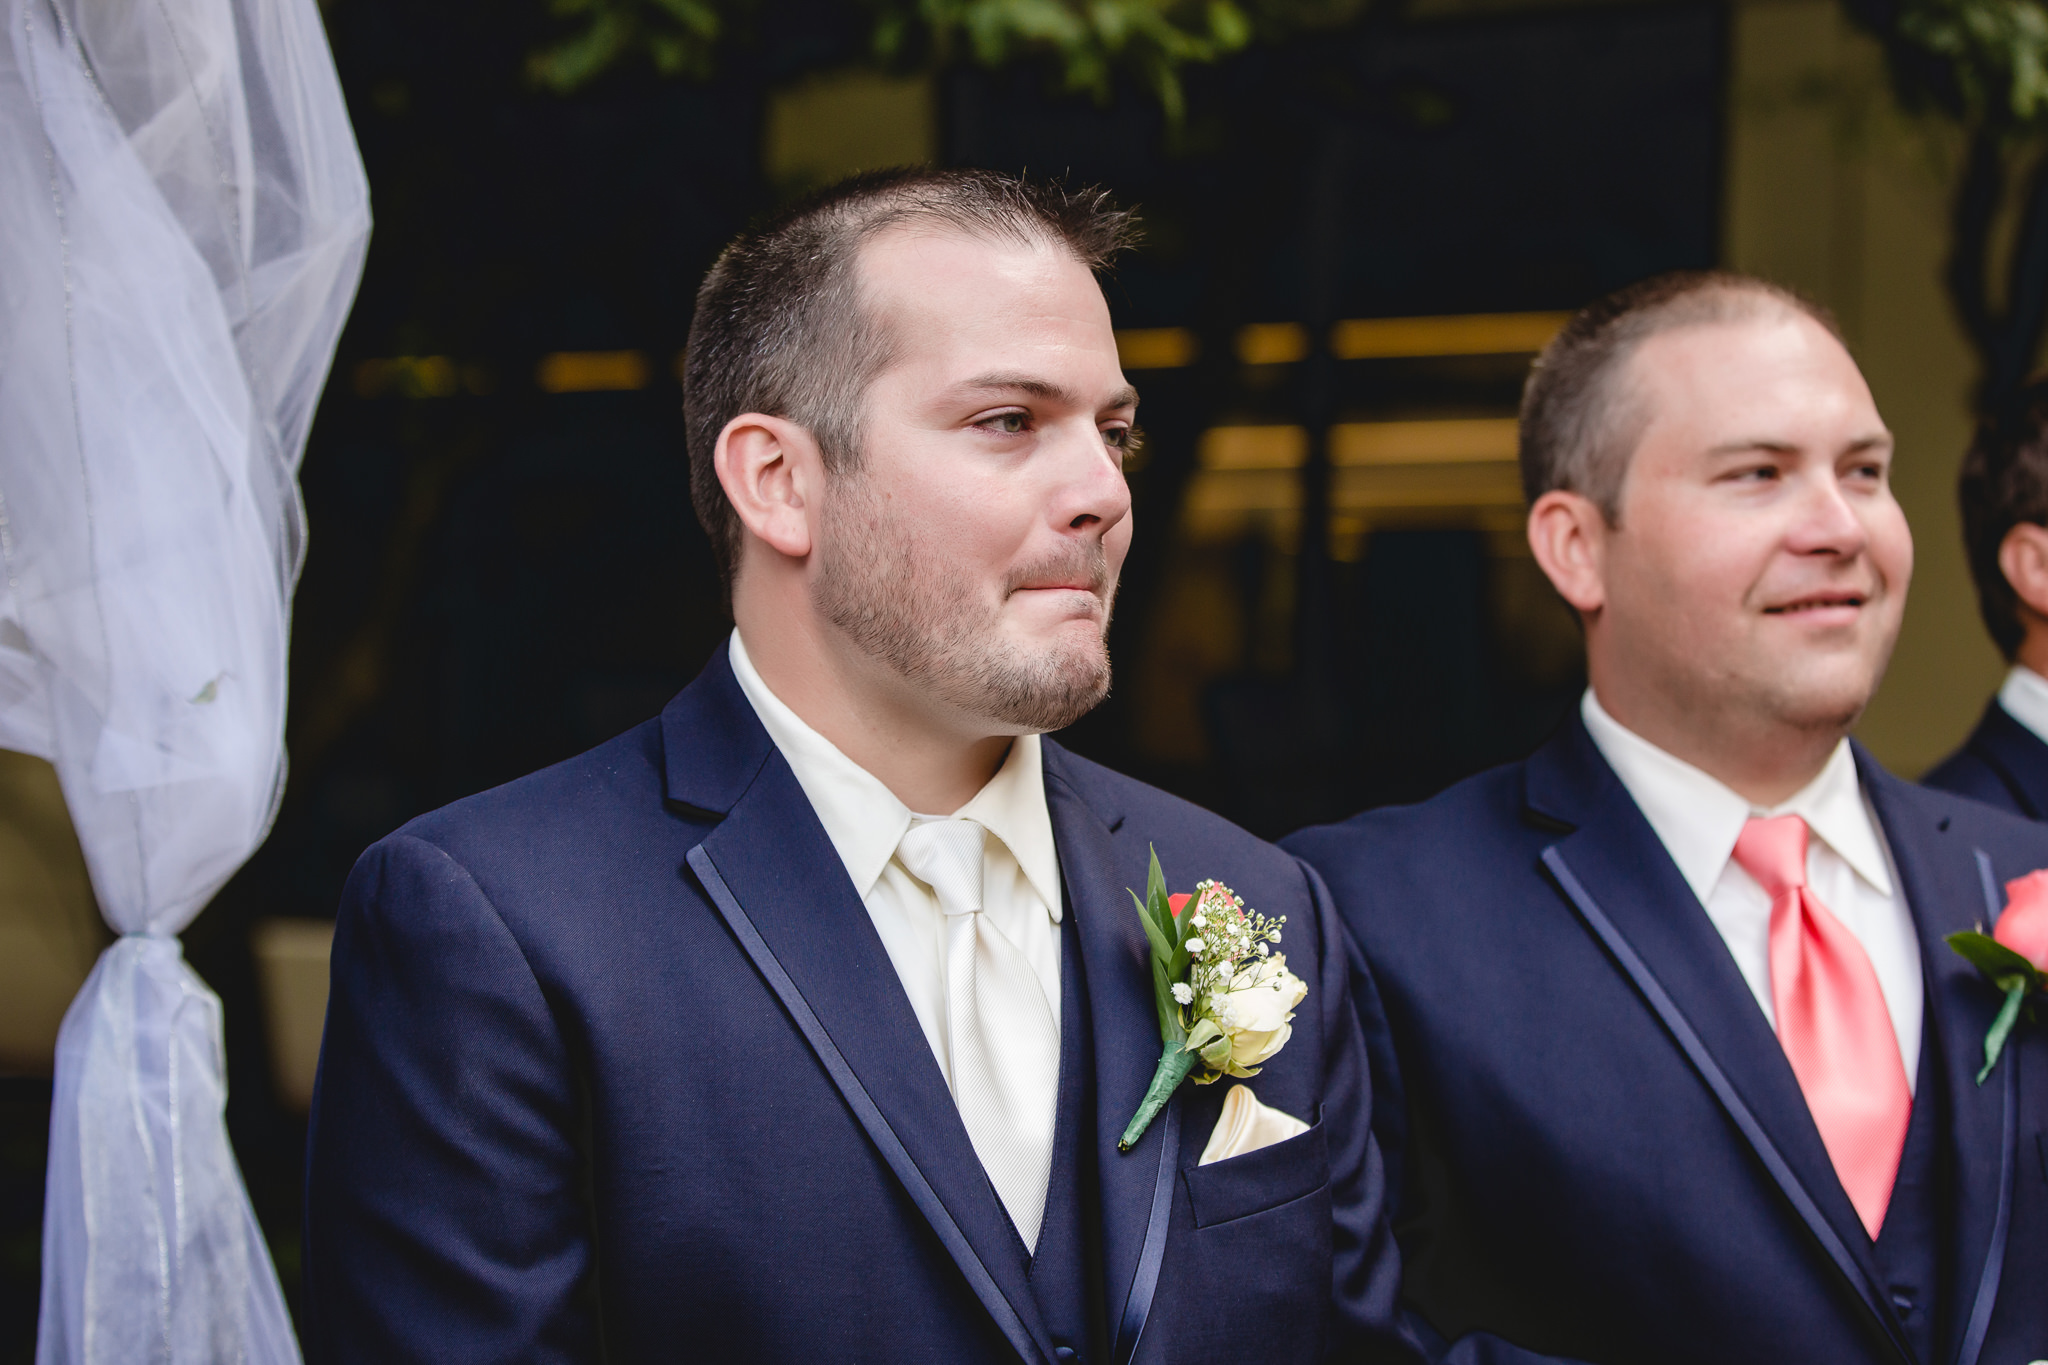 Groom holds back tears as he watches the bride walking down the aisle